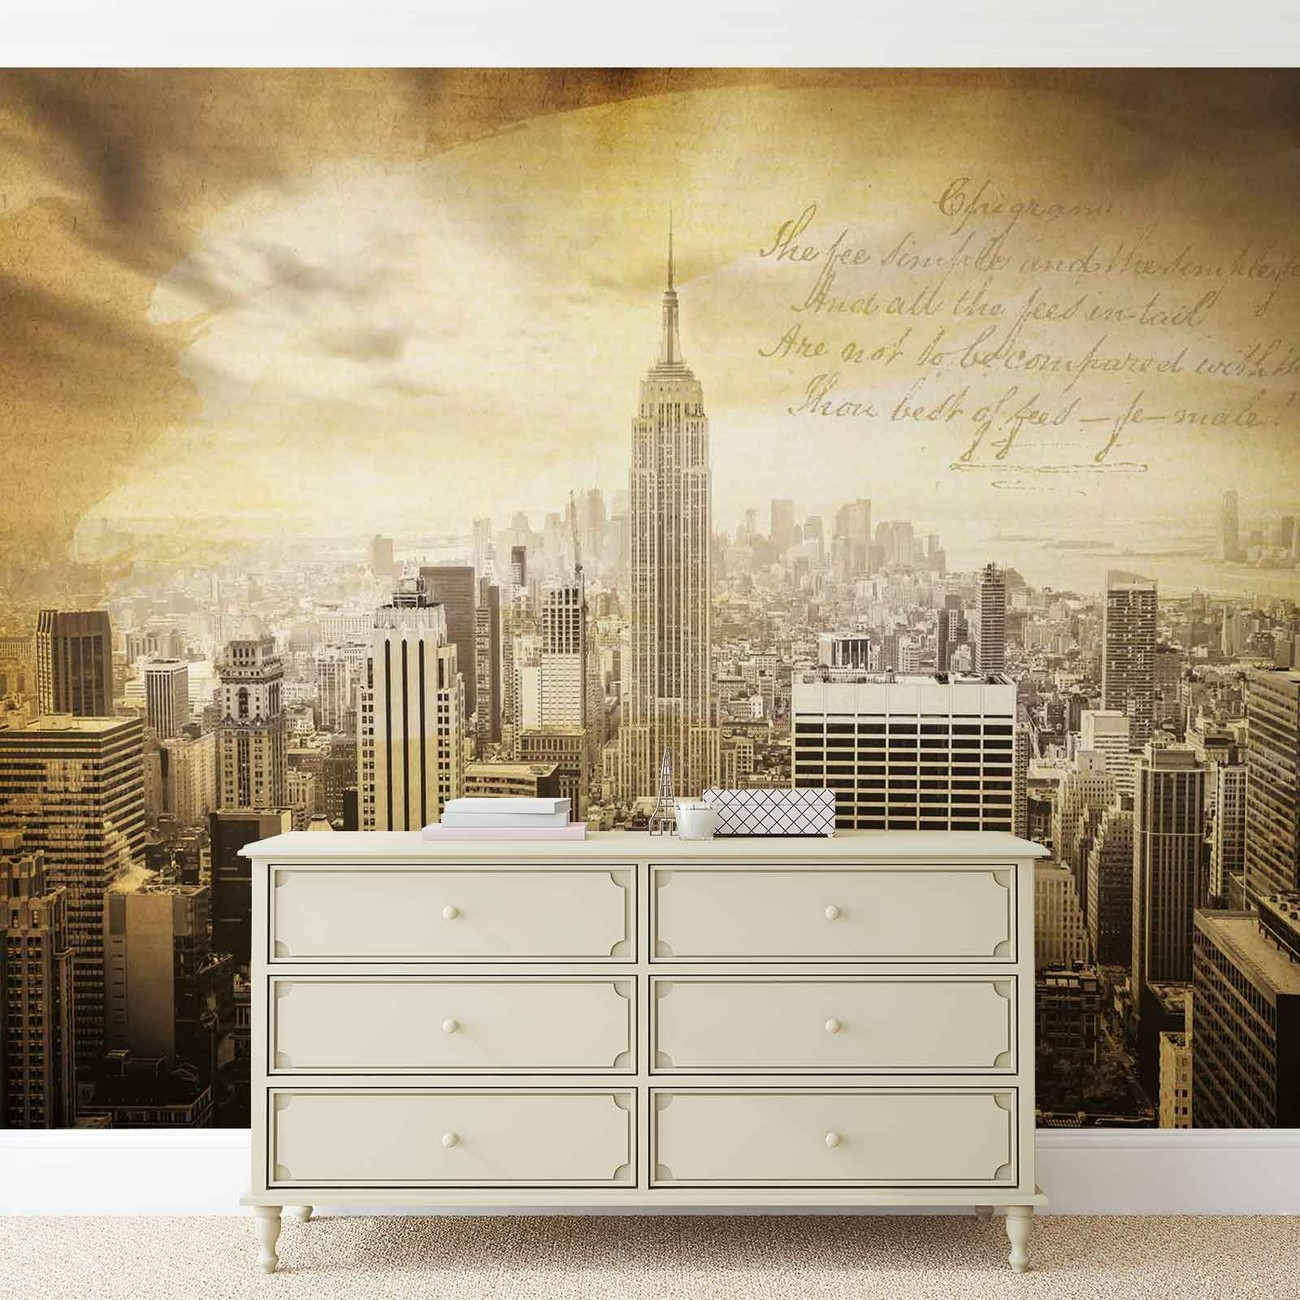 city new york vintage sepia wall paper mural buy at europosters price from